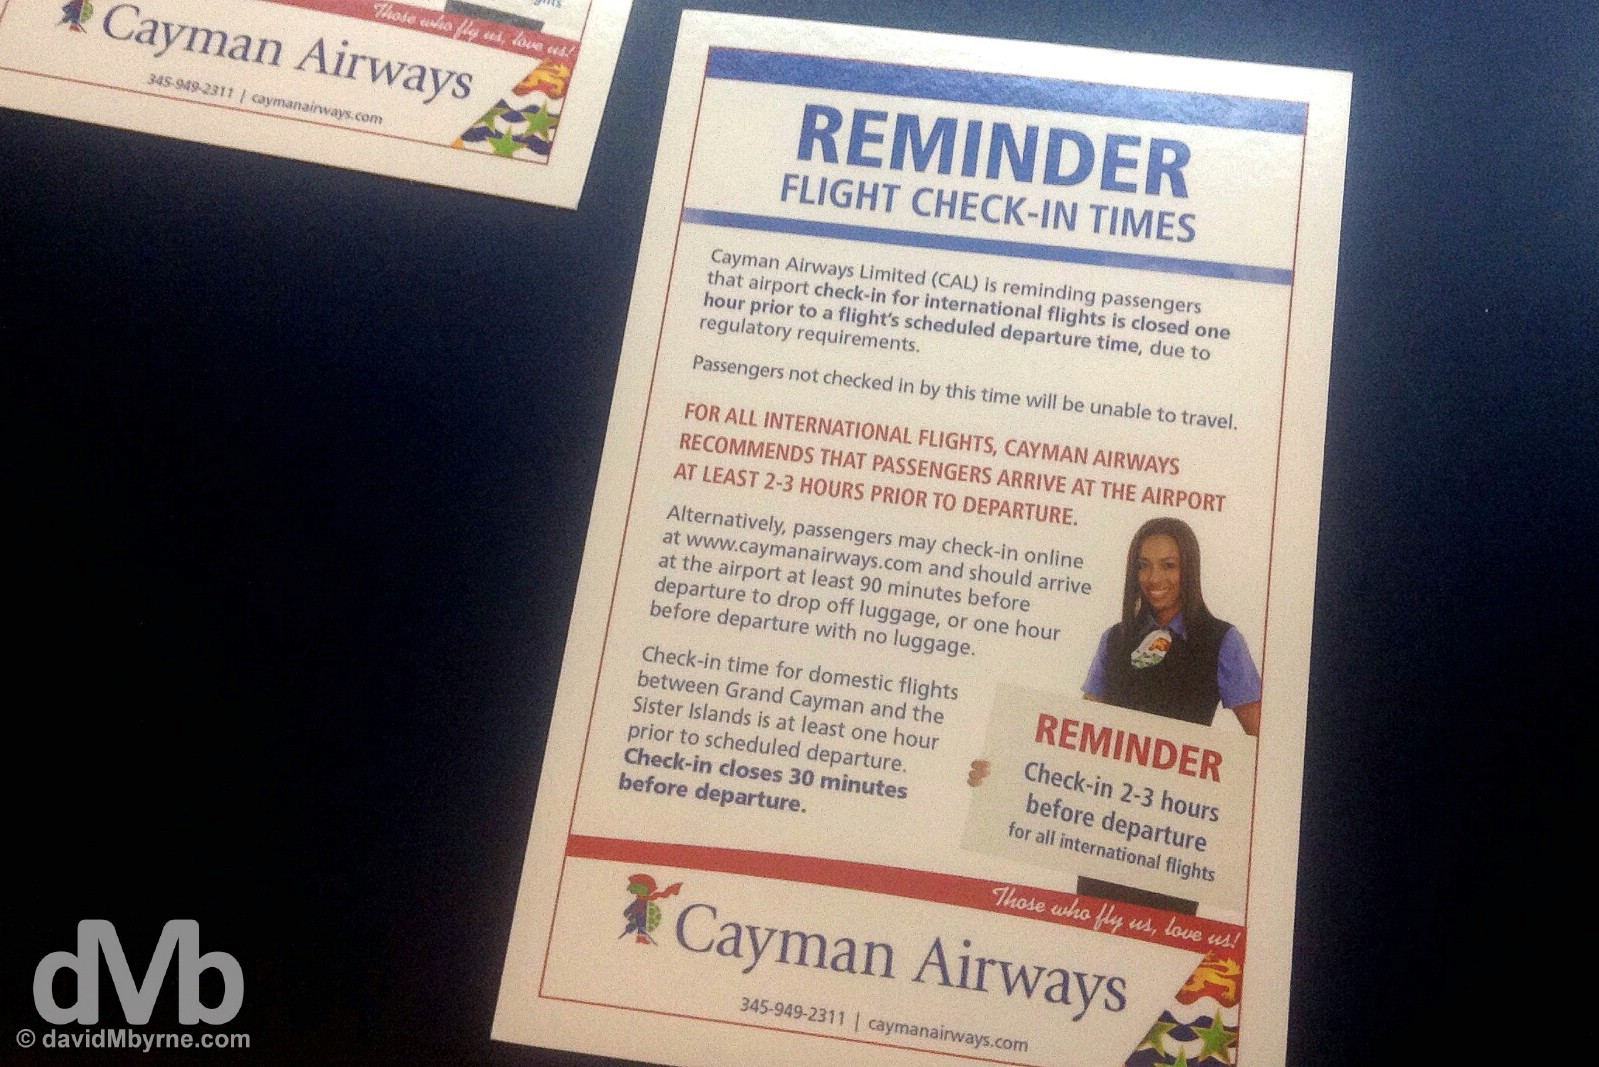 Cayman Airways Check-in reminder. Owen Roberts International Airport, Grand Cayman, Cayman Islands, Greater Antilles. May 12, 2015.